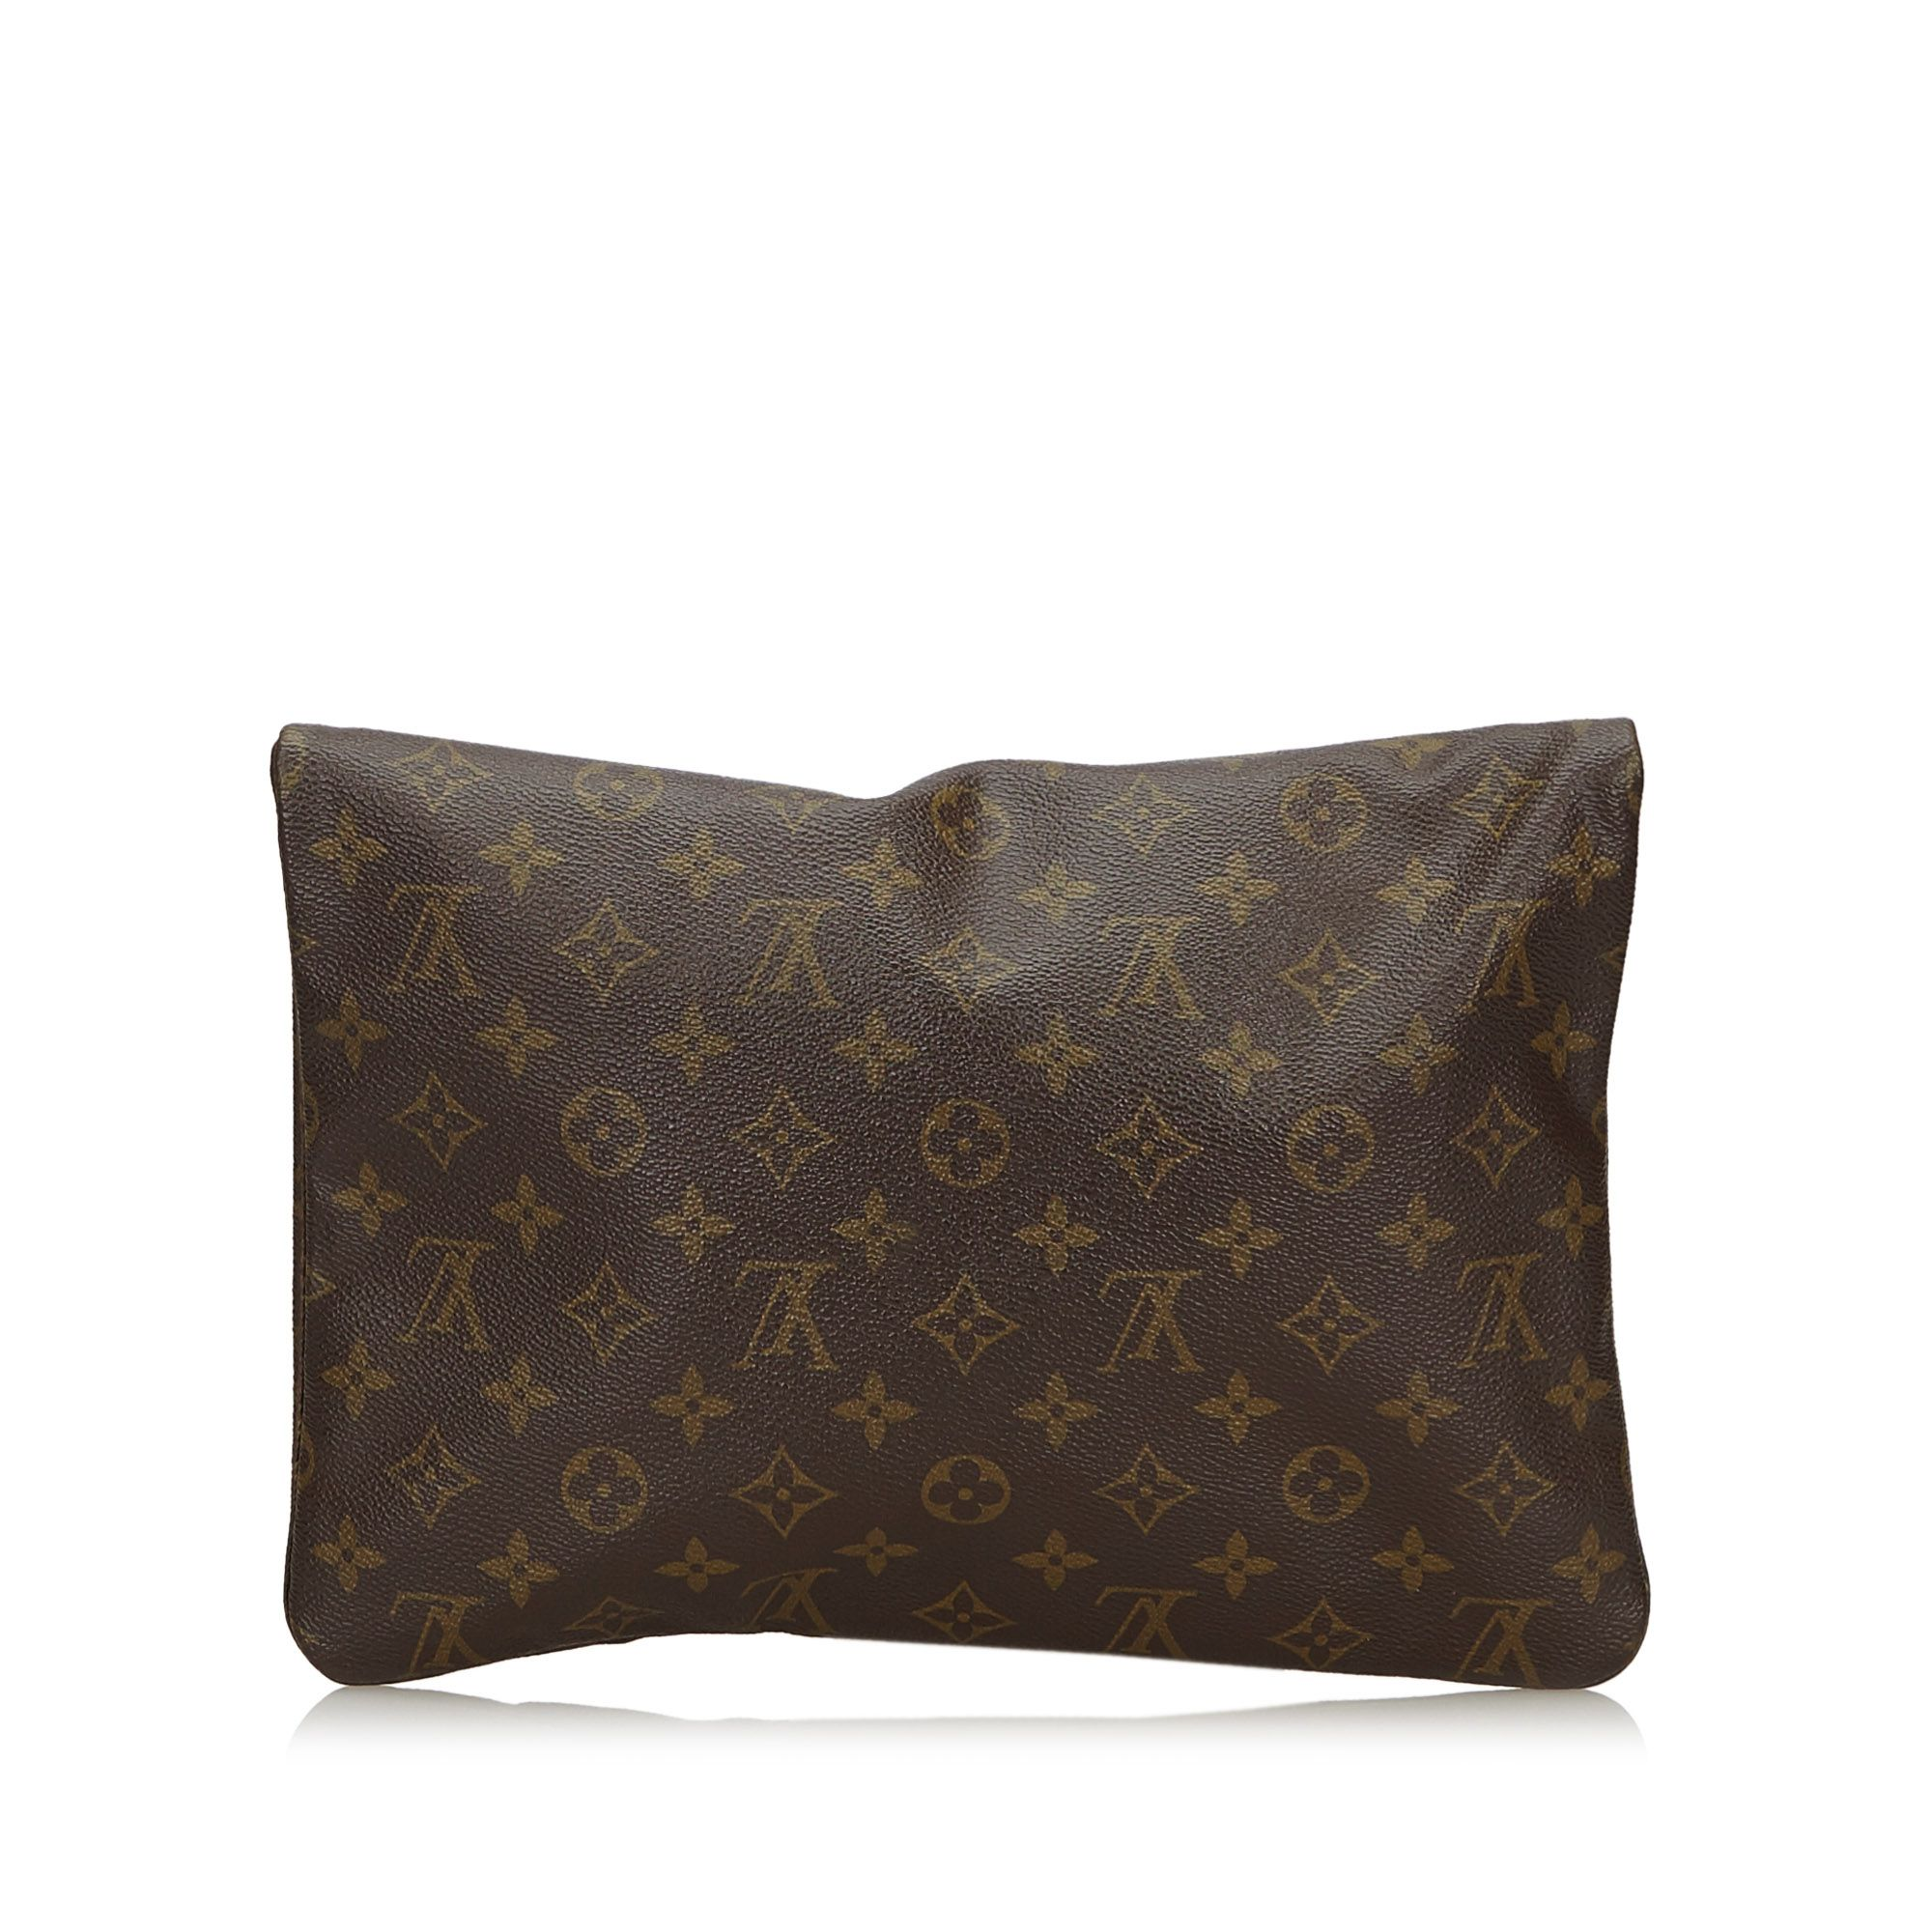 Vintage Louis Vuitton Monogram Pochette Pliant Brown